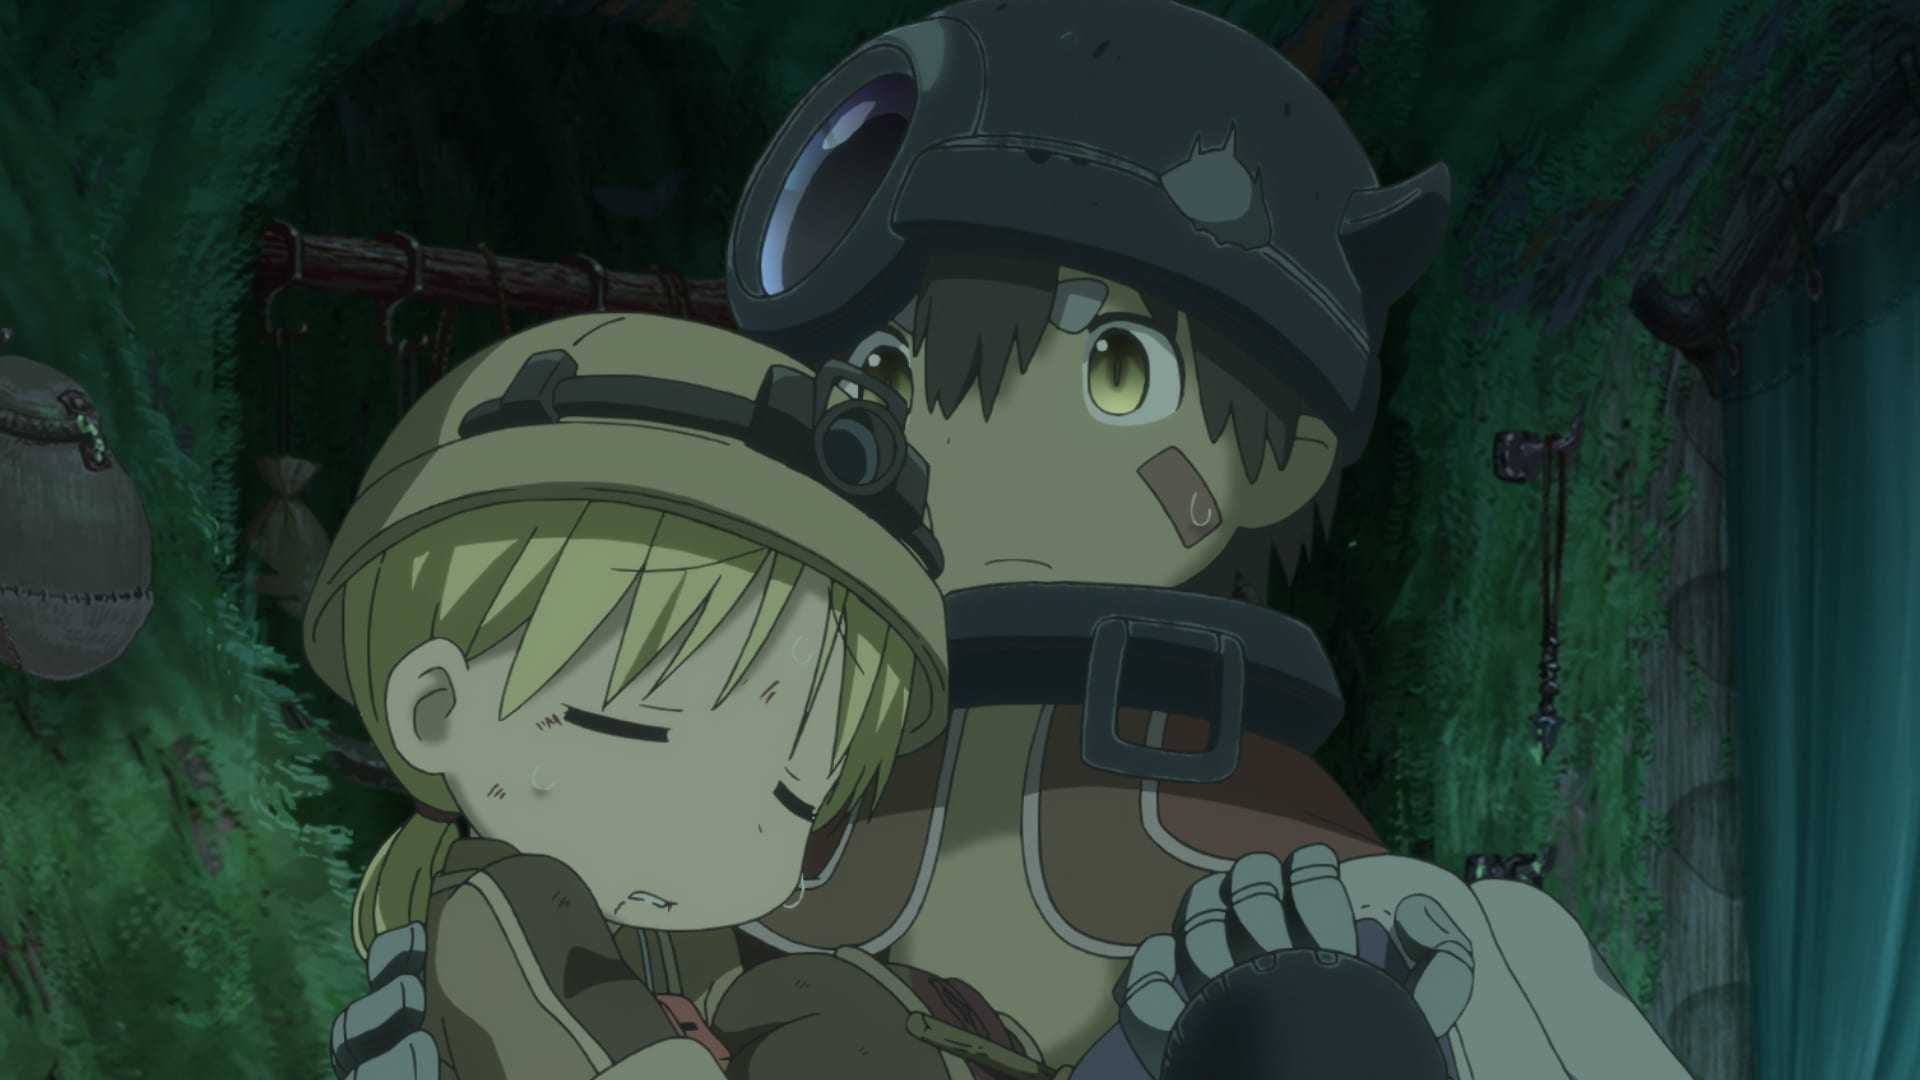 Made in Abyss scn4